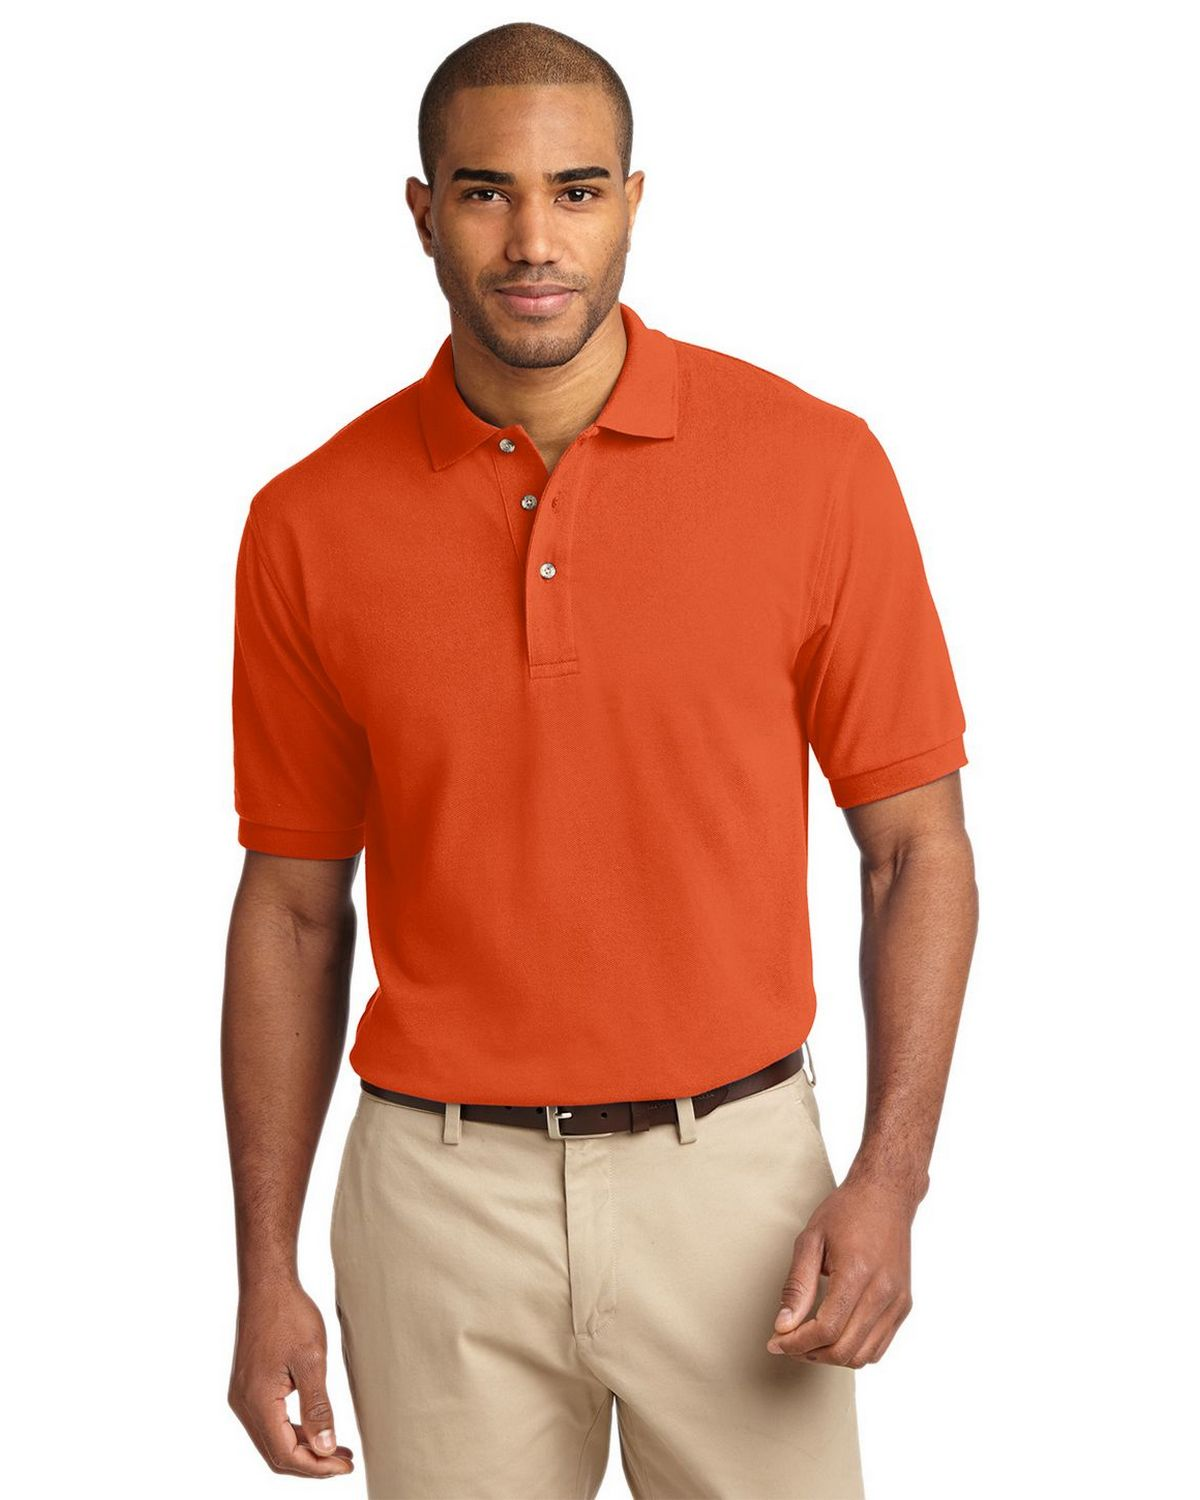 Port Authority K420 Pique Knit Polo - Orange - XS